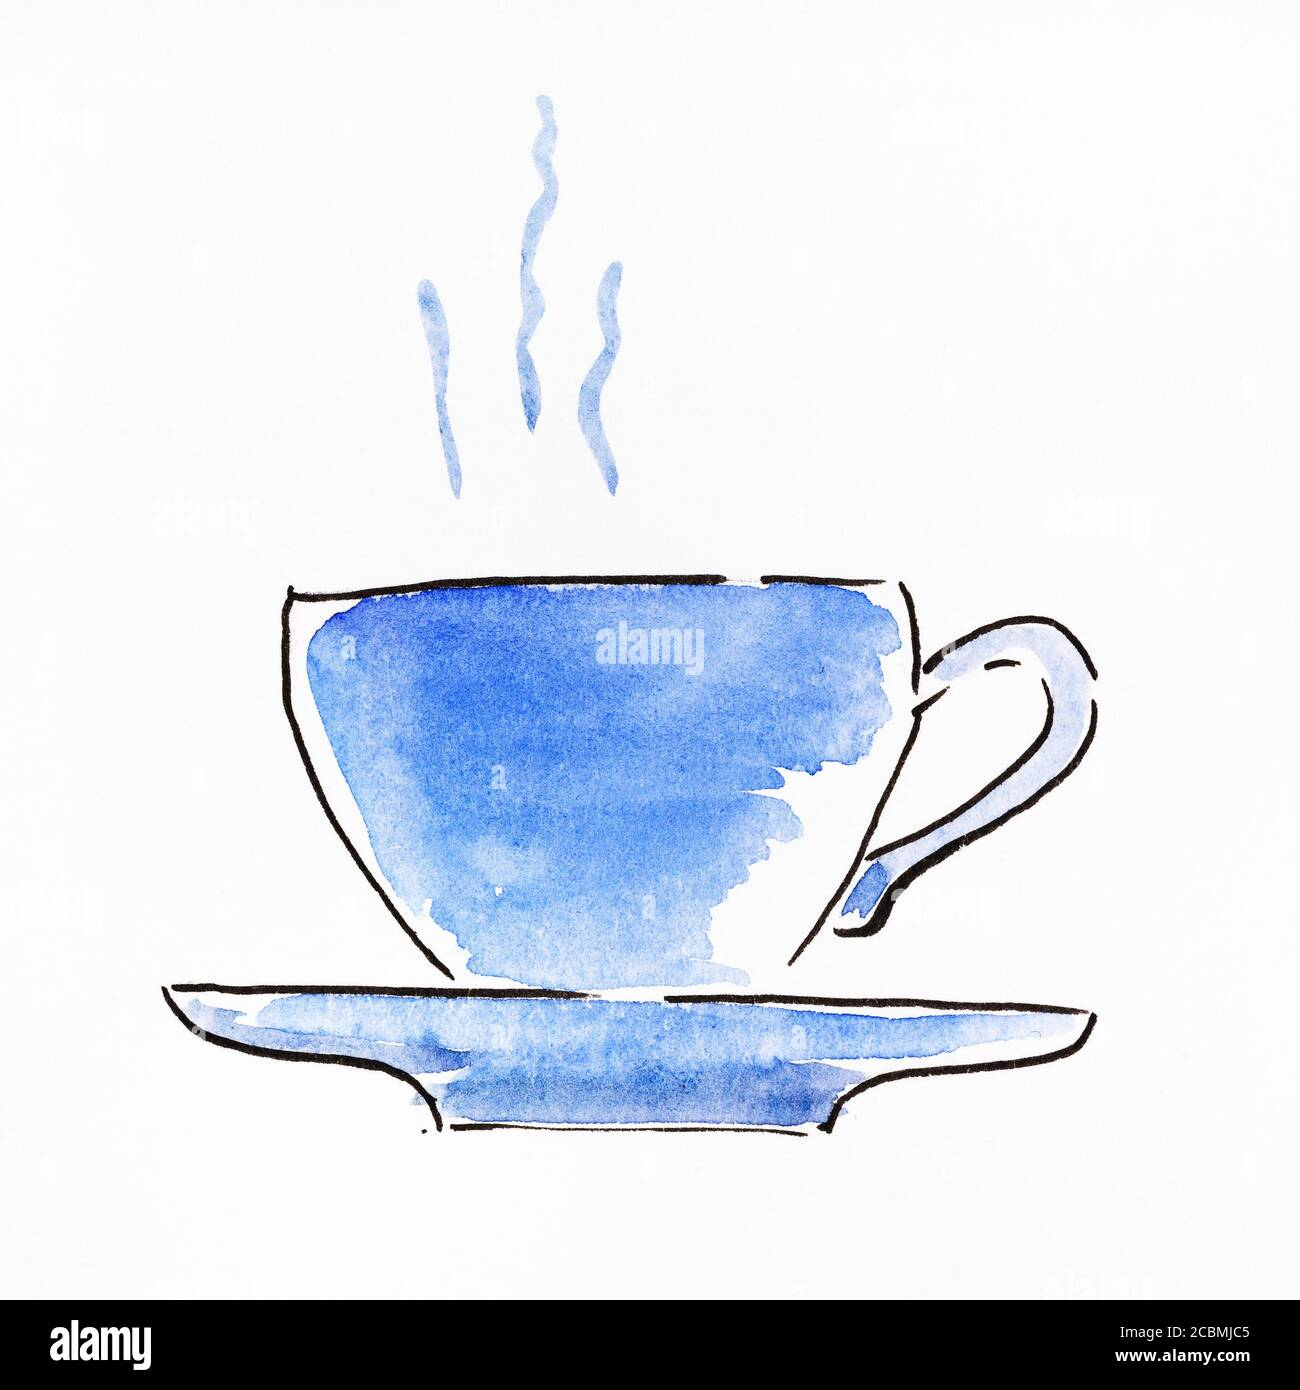 Sketch Of Side View Of Tea Cup And Saucer Hand Drawn By Black Ink And Blue Watercolours On White Paper Stock Photo Alamy